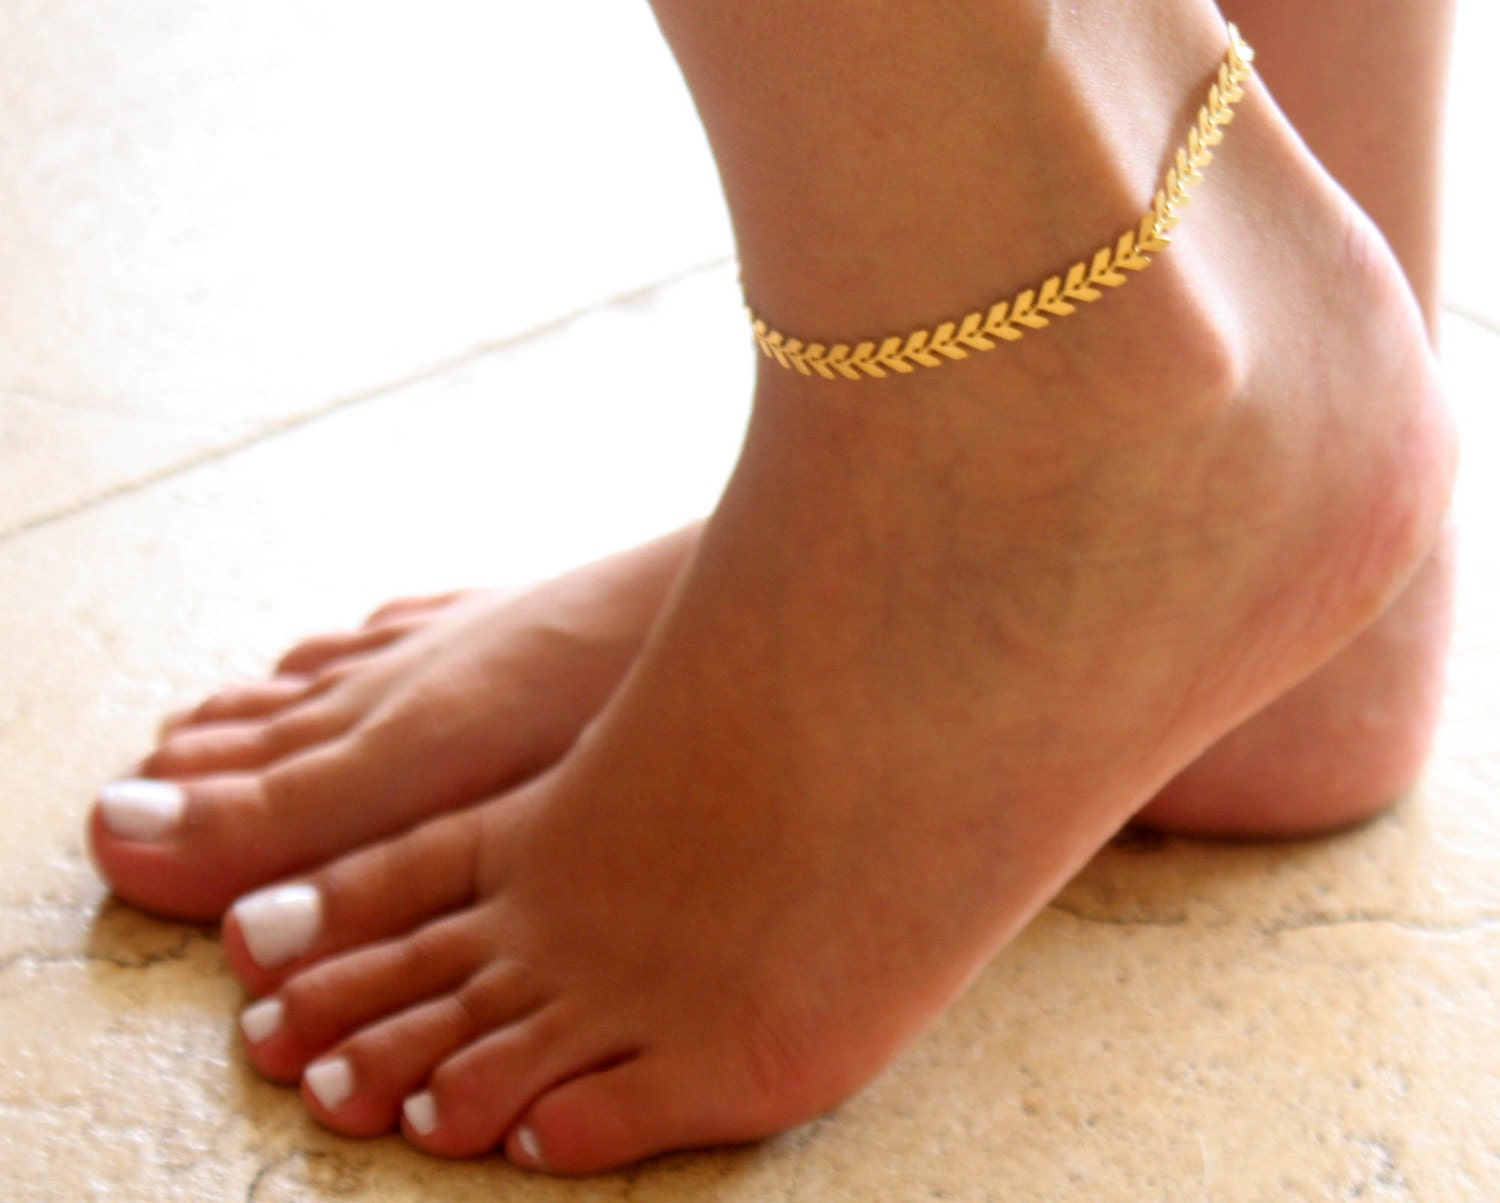 next ankle gold previous anklet clear strap rose sandals perspex missguided vamp tie